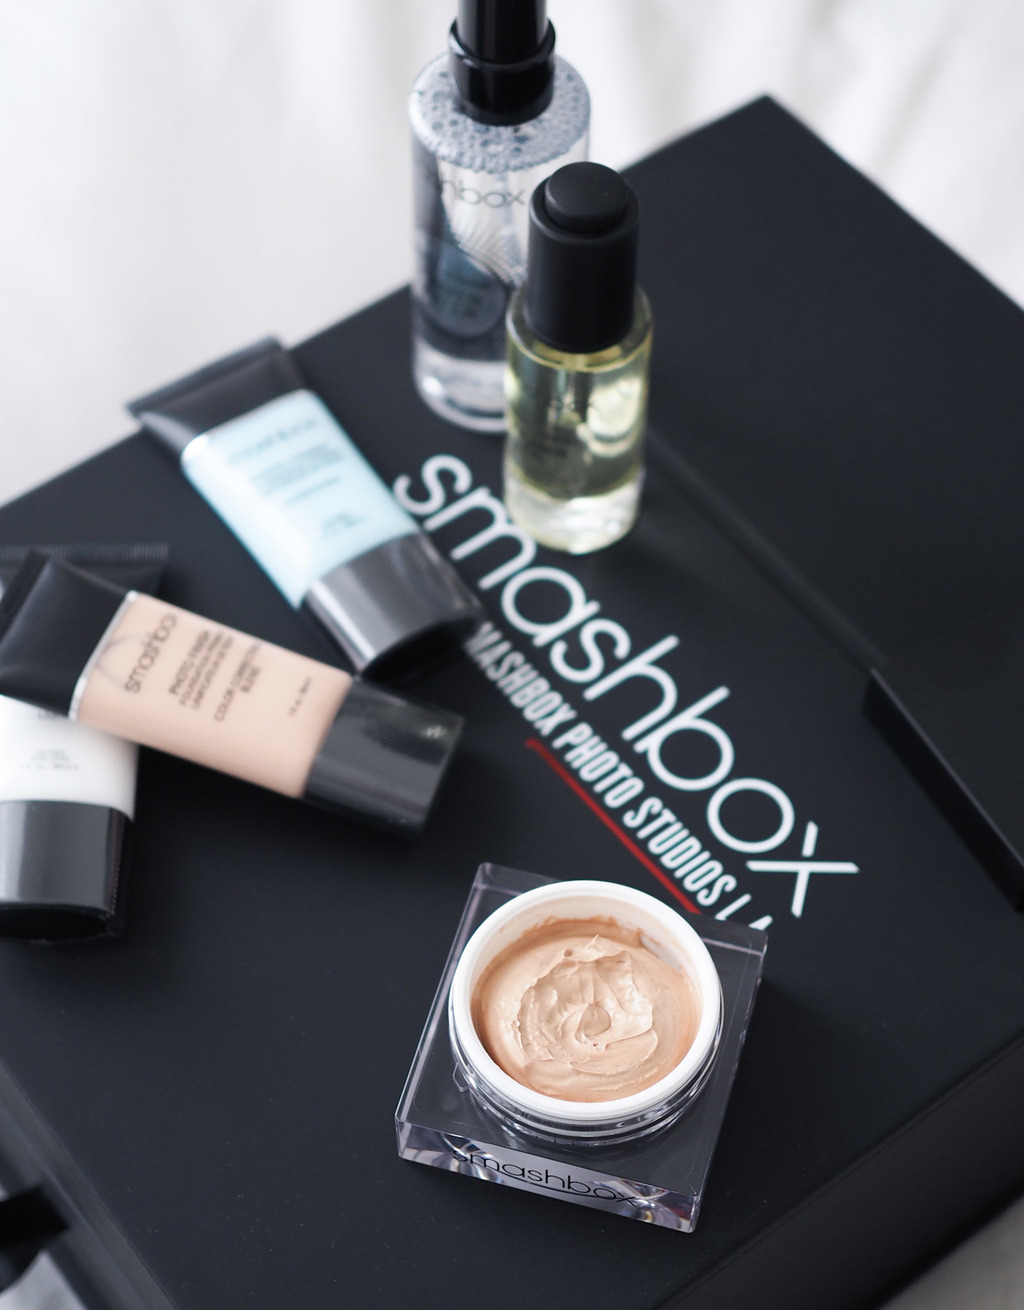 NEW & ON TRIAL: SMASHBOX PHOTO FINISH RADIANCE PRIMER